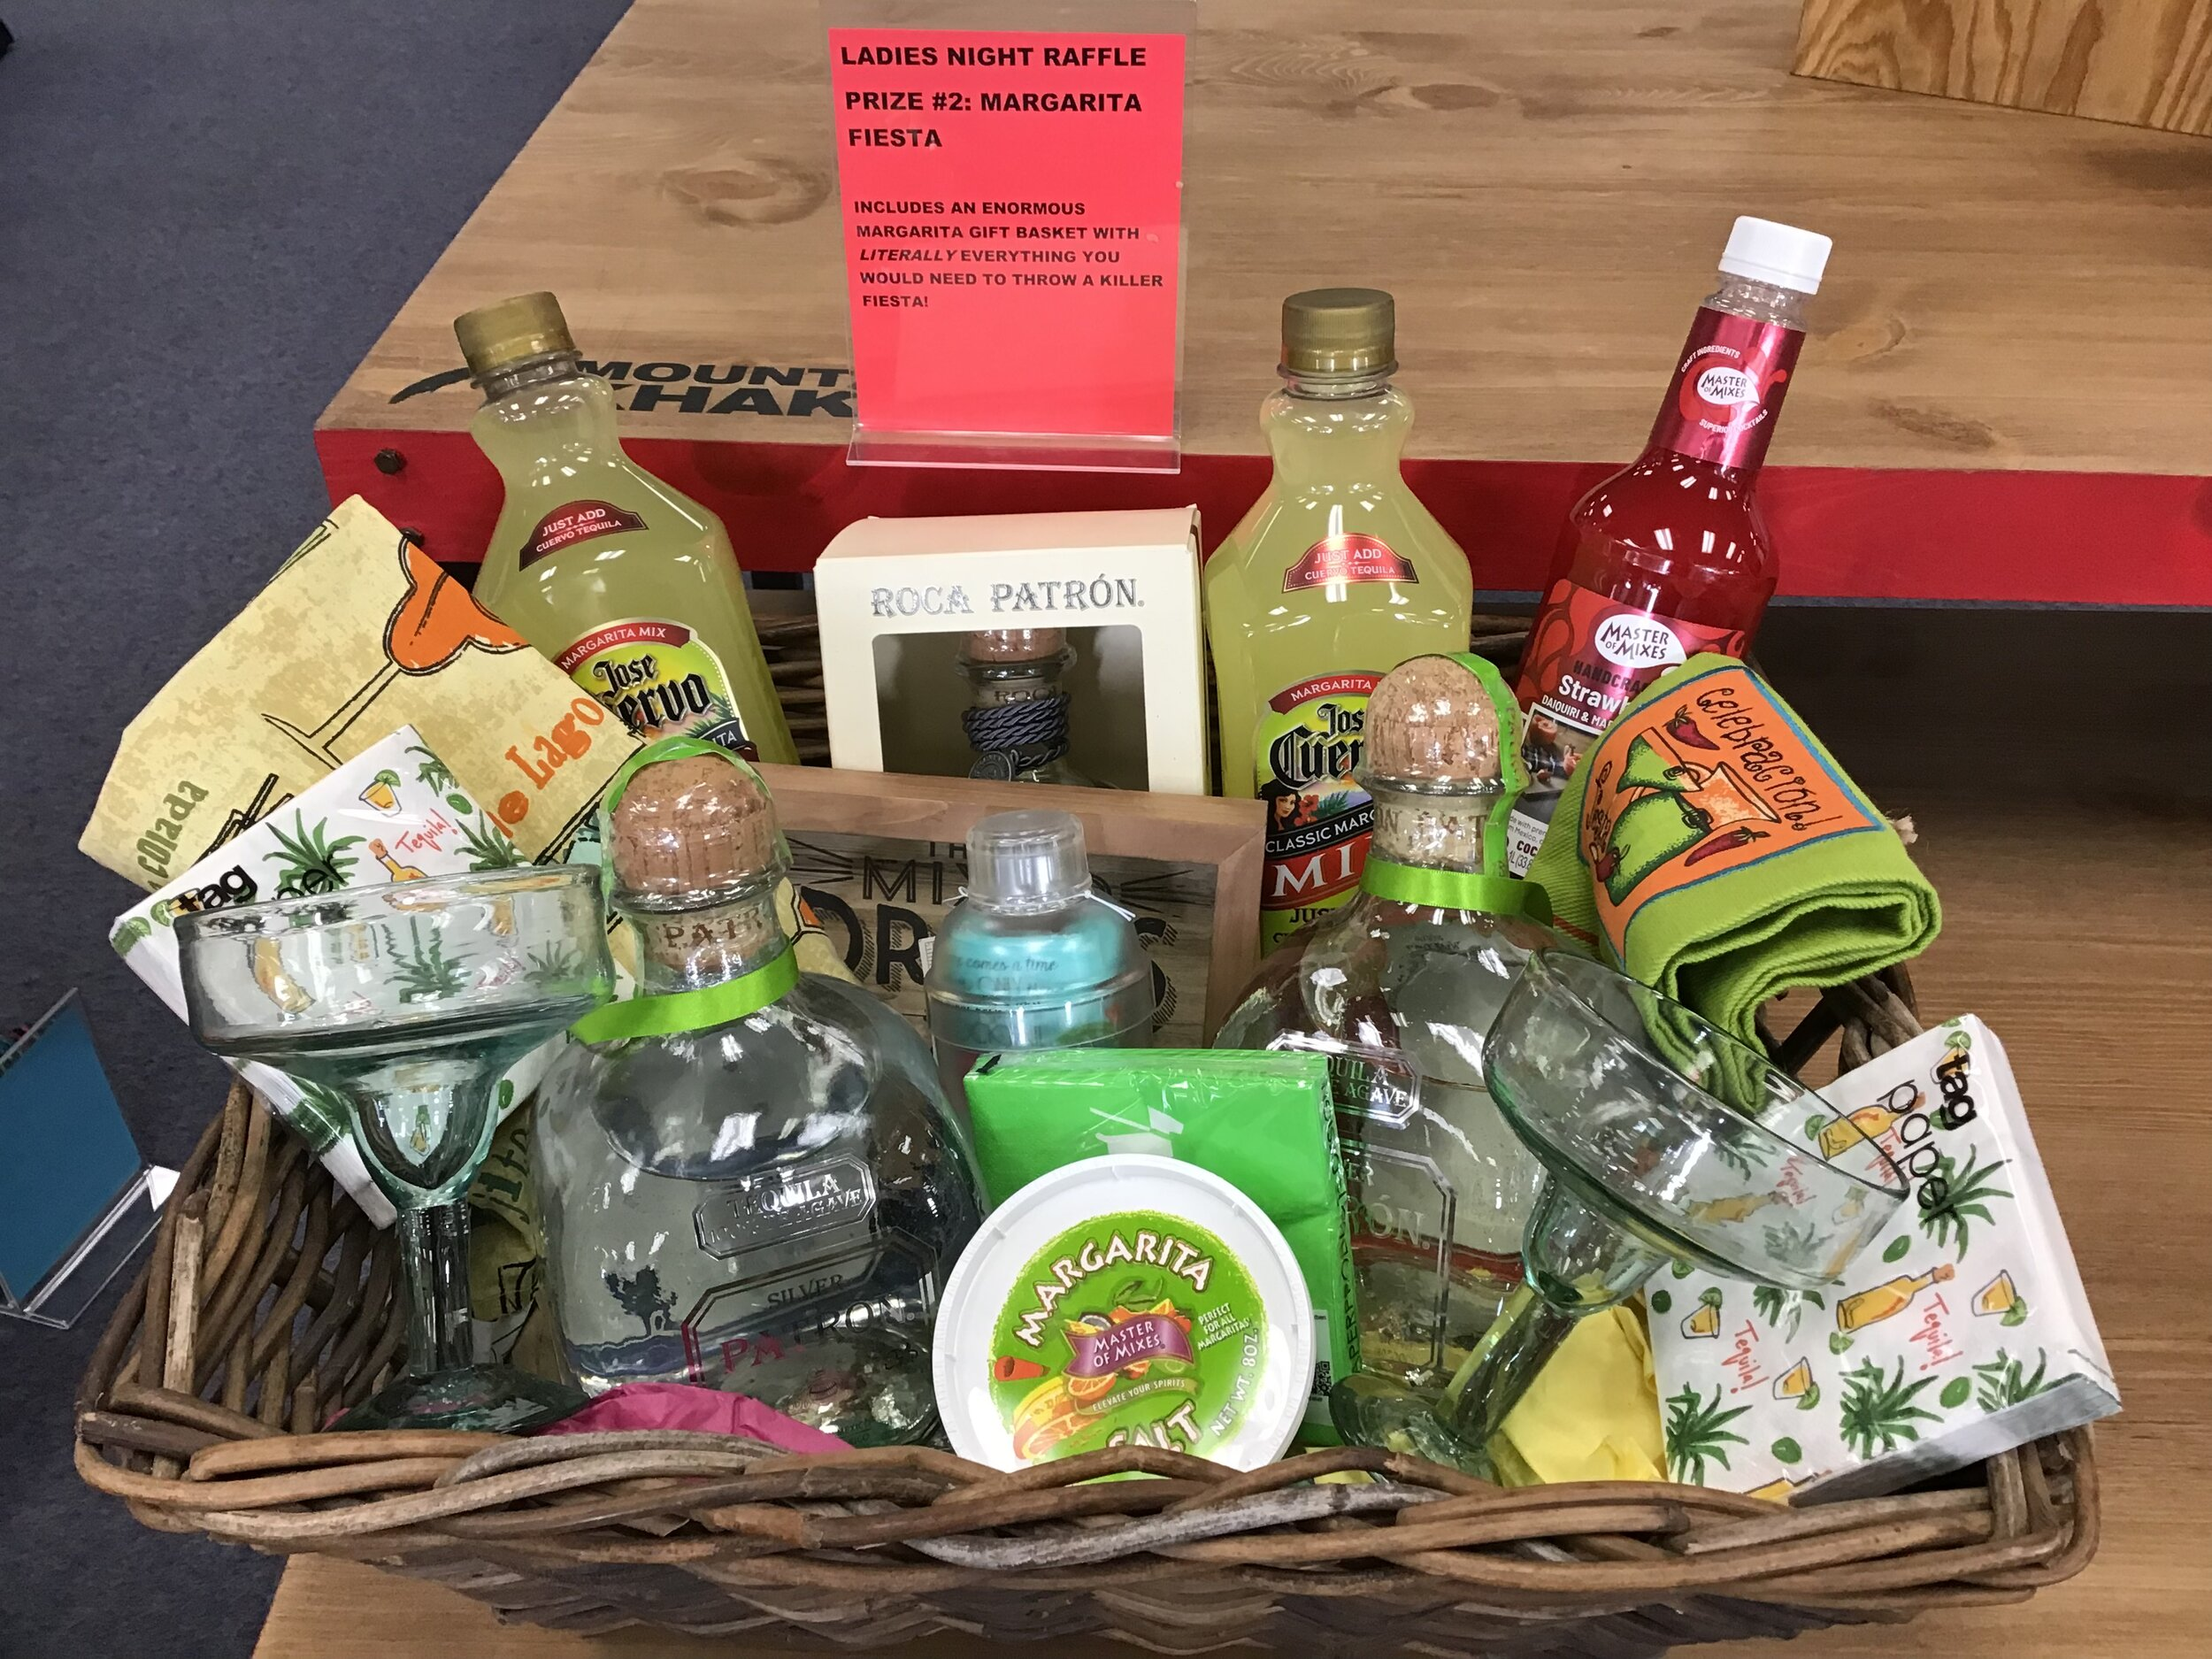 RAFFLE PRIZE #2 - Margarita Fiesta - Everything you need to make a Margarita Fiesta!* Must be 21 or older to win this prize* Winner must pick up in person with valid photo ID that matches the winning raffle ticket